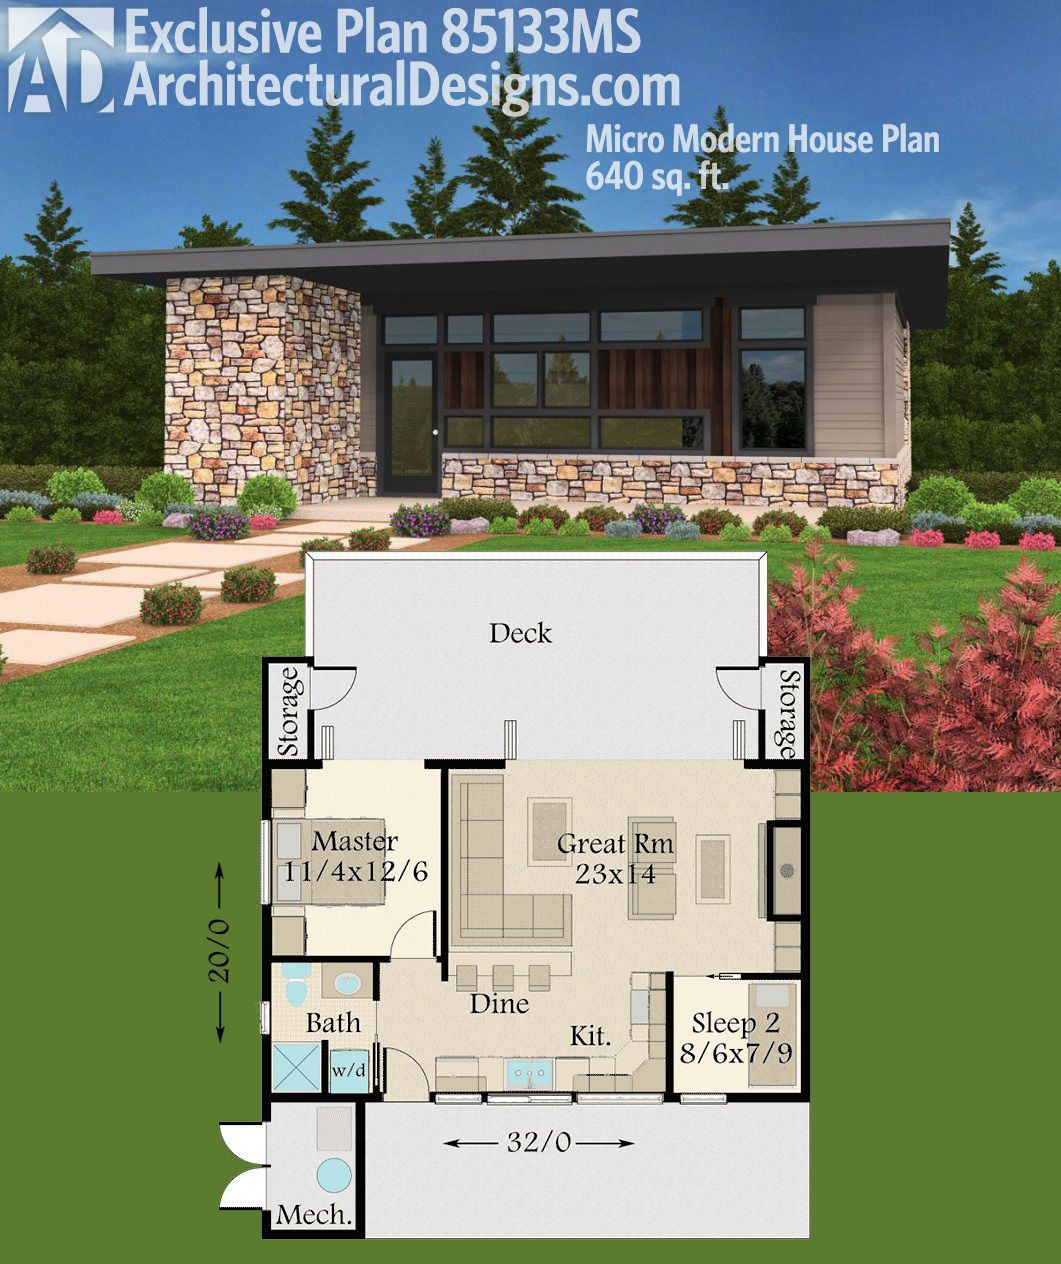 Plan 85133MS: Exclusive Tiny Modern House Plan with Outdoor Spaces on small wide house, kit home small house, small black house, small irish home, small arch house, small park house, small adobe brick house, small flower house, small rectangle house, small cube house, small house interiors, small house under 500 sq ft, small moon house, filigree house, small homes under 600 sq ft, small ball house, small sphere house, small 800 sq ft. house plans, small sun house, small track house,